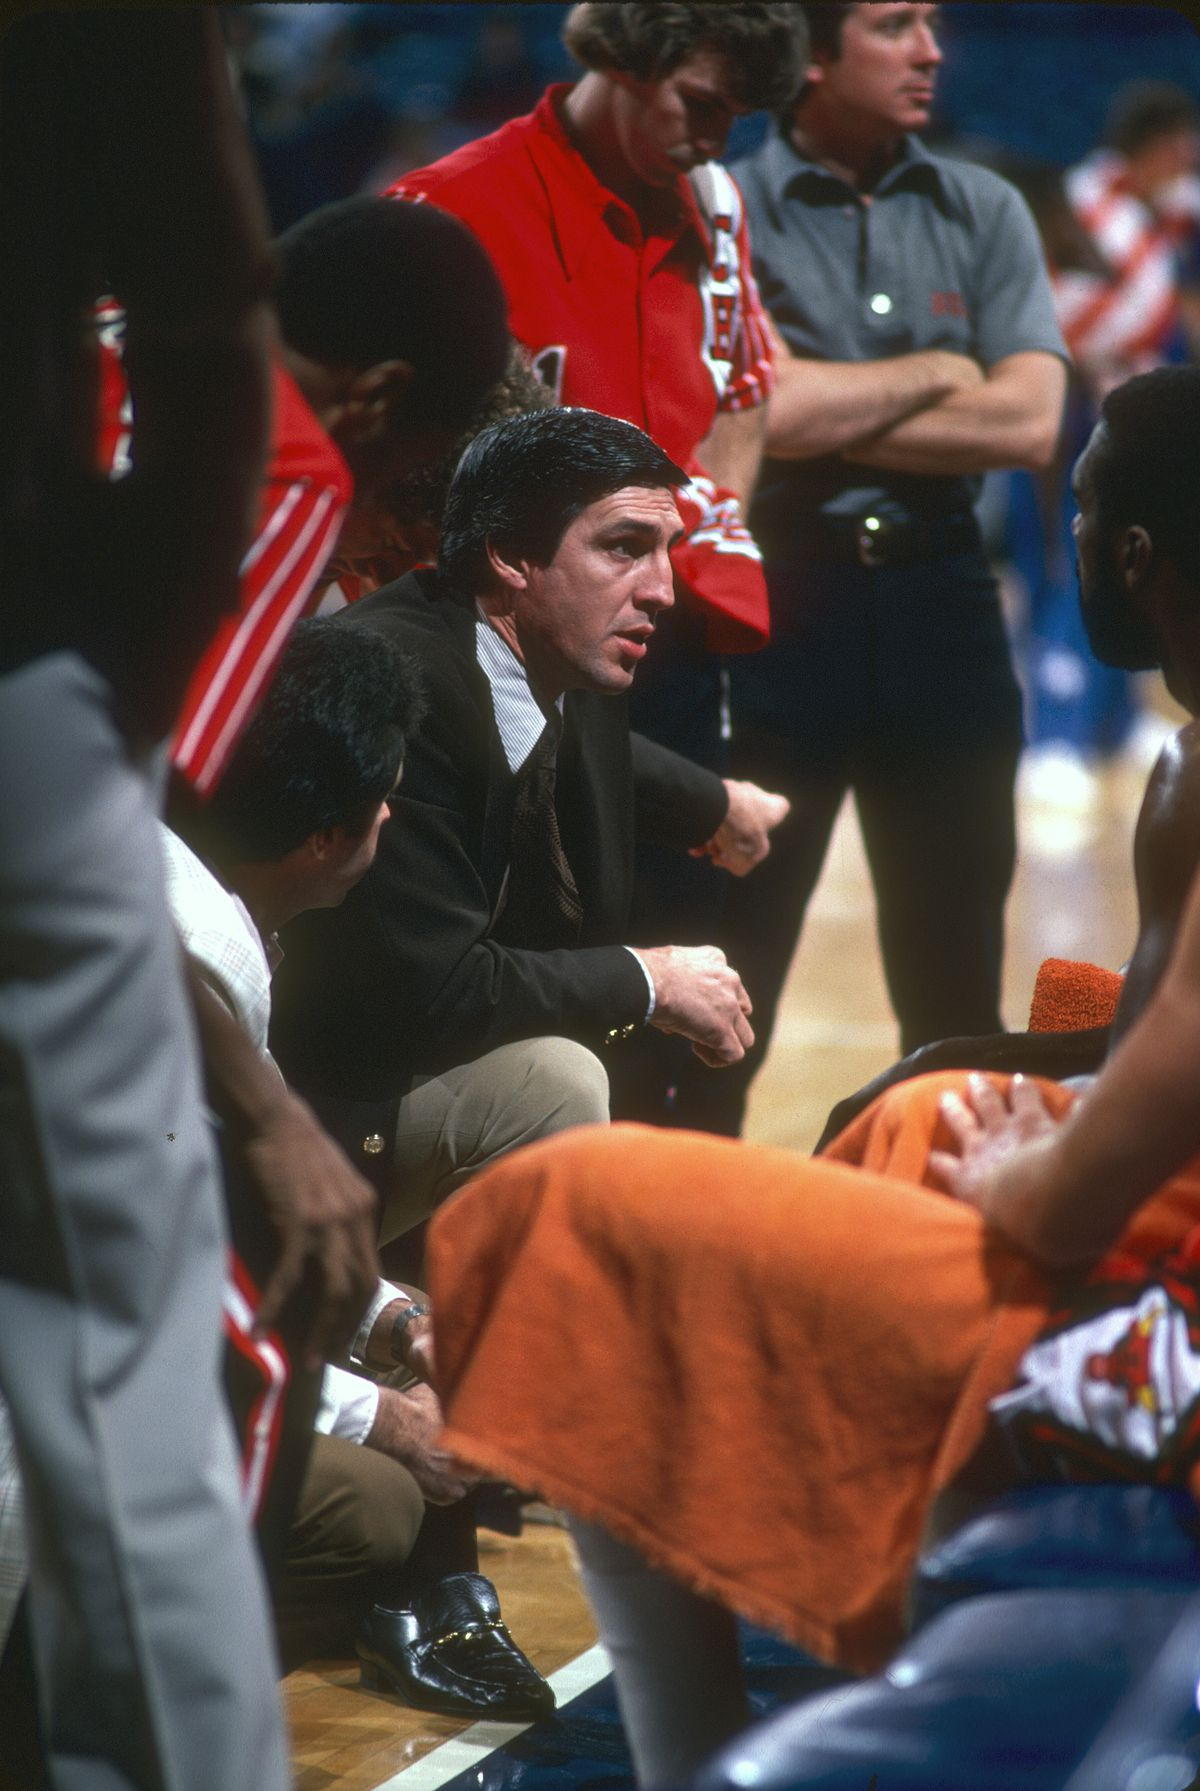 fe6bdad15414 Head coach Jerry Sloan of the Chicago Bulls talks with his team during a  timeout of an NBA basketball game circa 1979 Getty Images